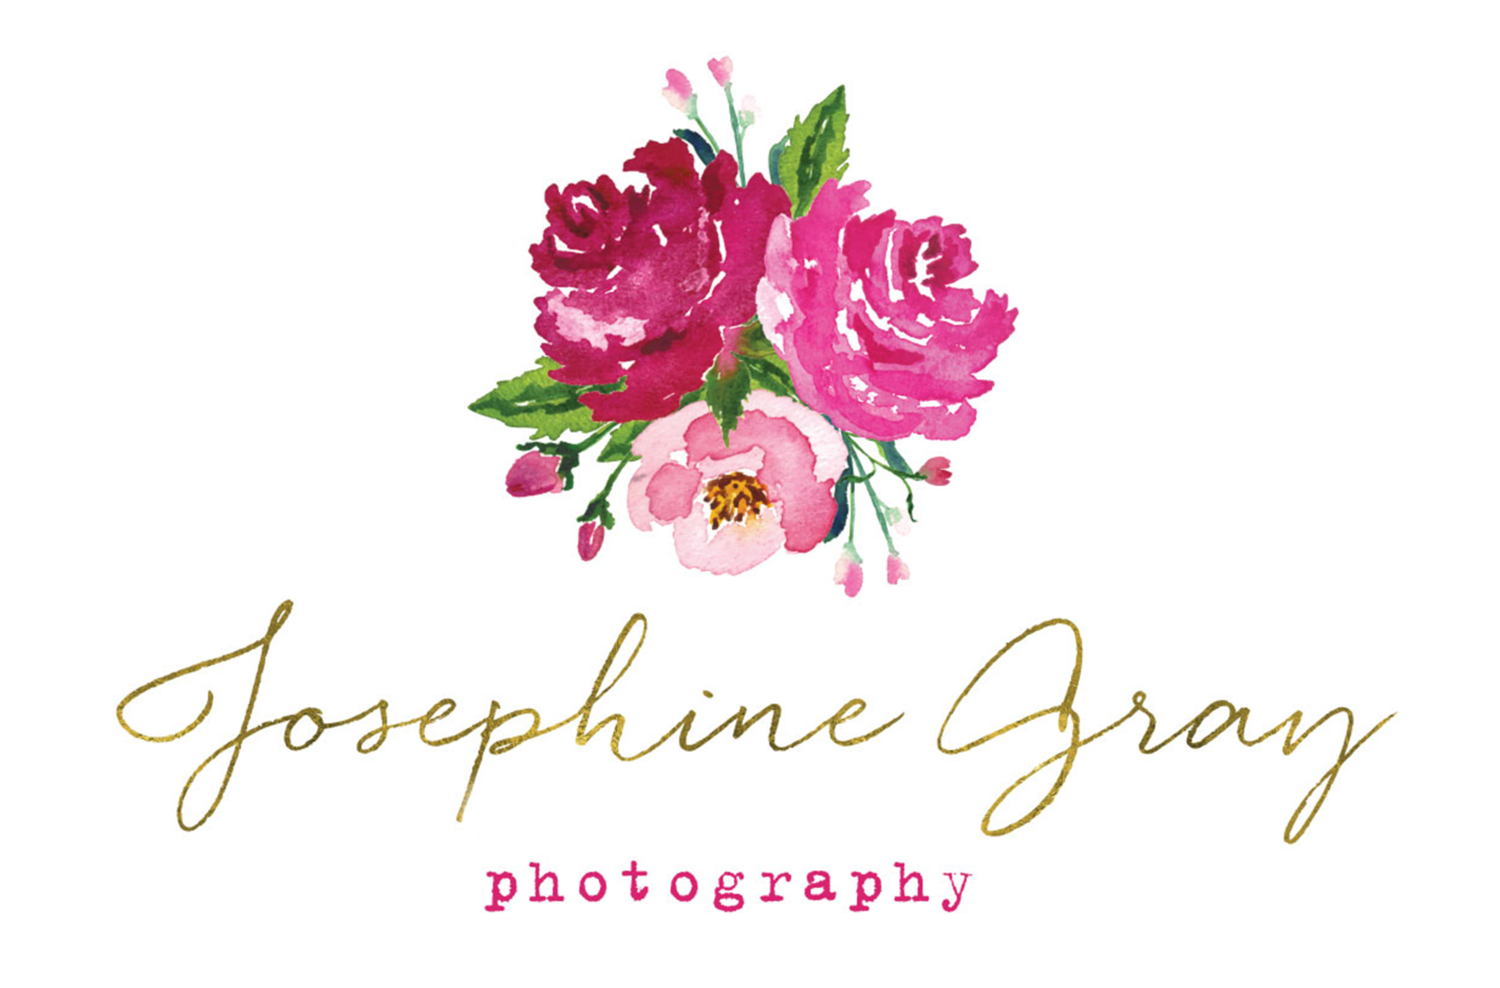 Josephine Gray Photography